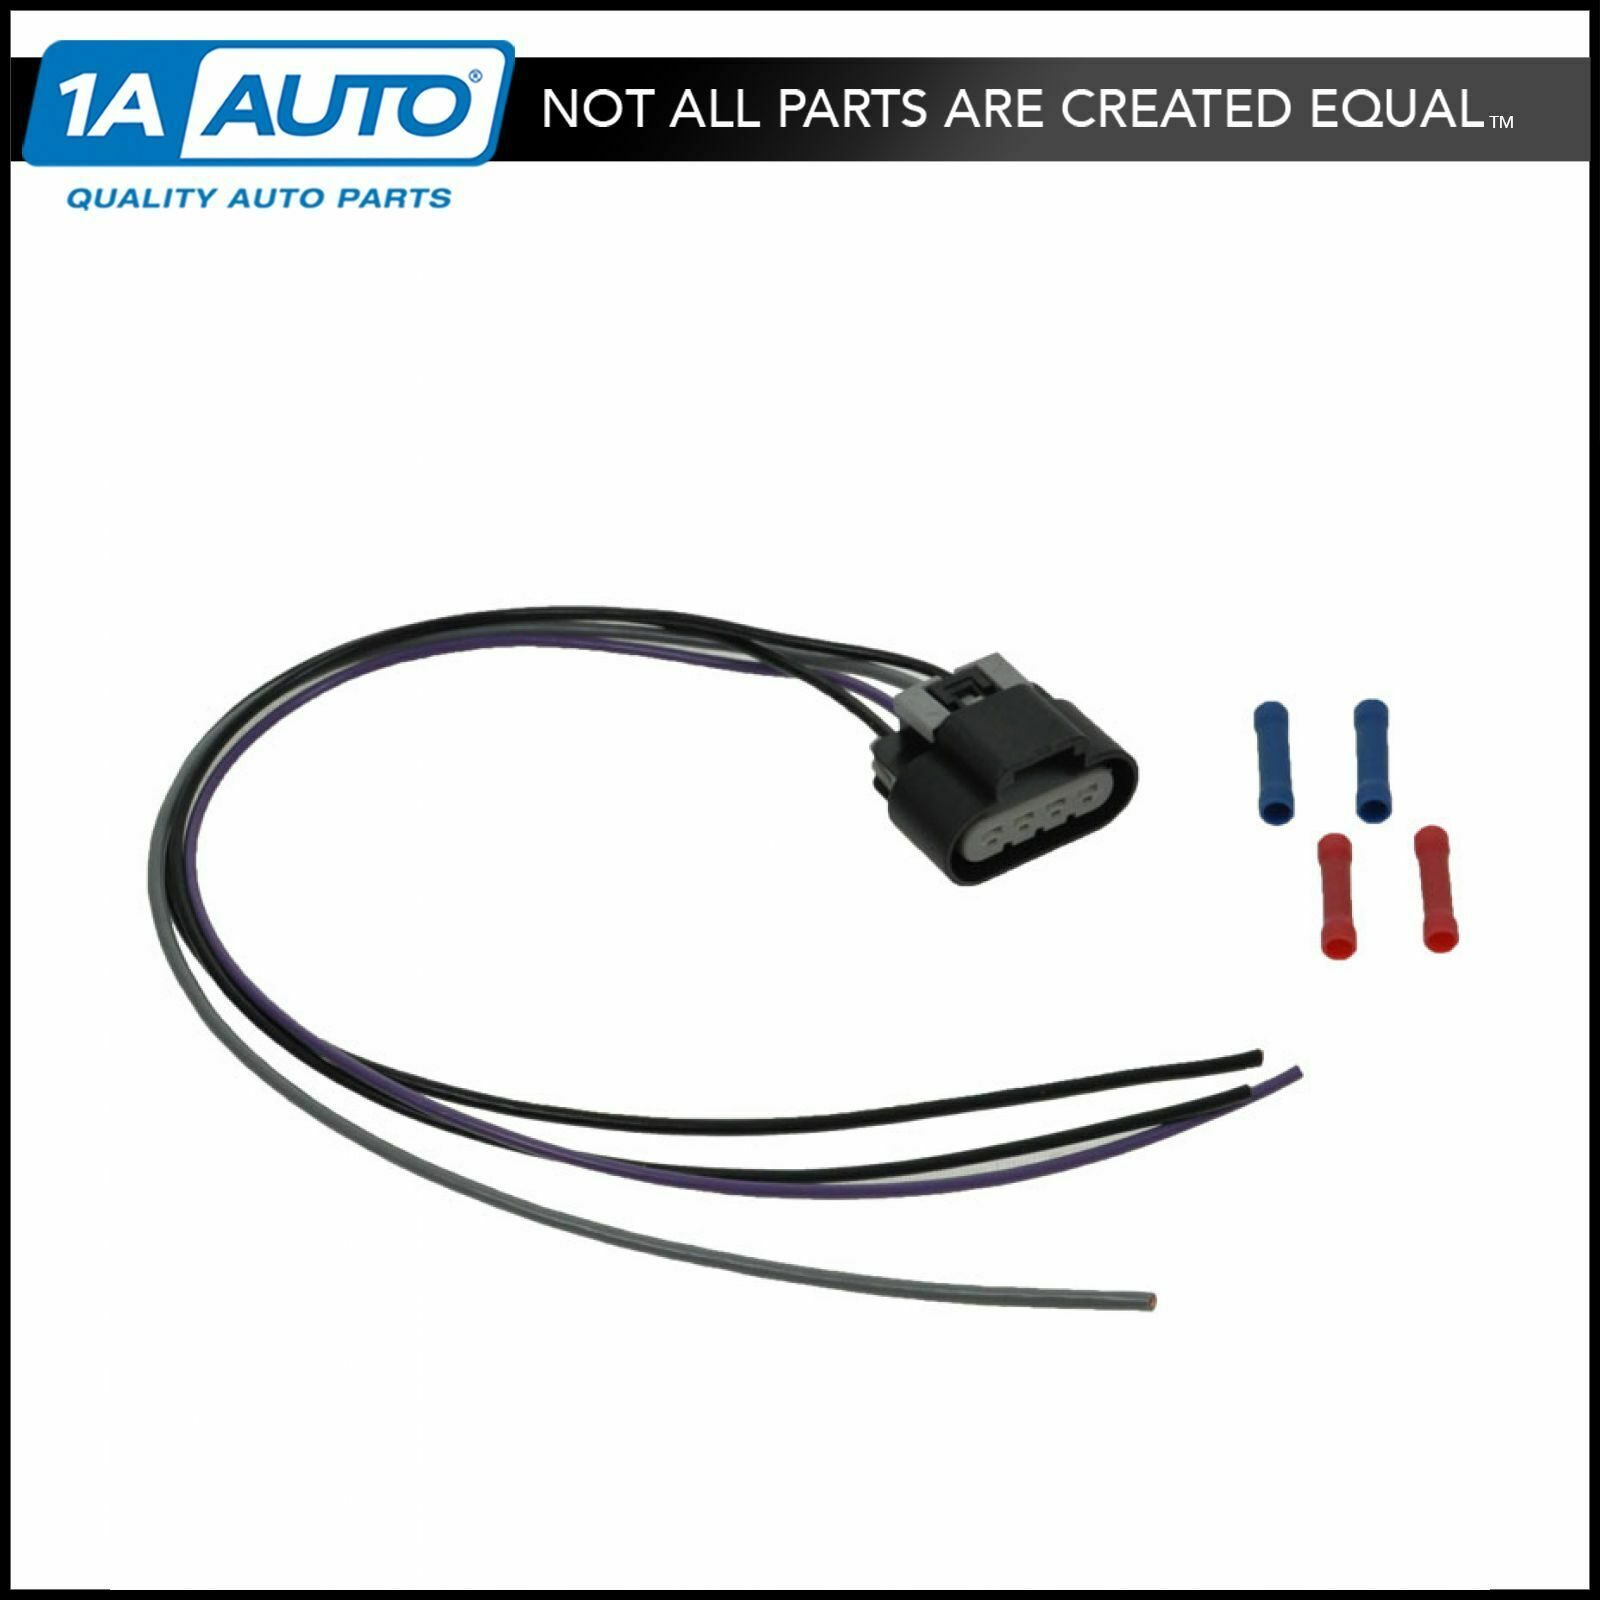 Fuel Pump Wiring Harness With Oval Connector 4 Wire Pigtail For Gm Oxigen Sencer 2000 Gmc Jimmy 1 Of 2only 3 Available